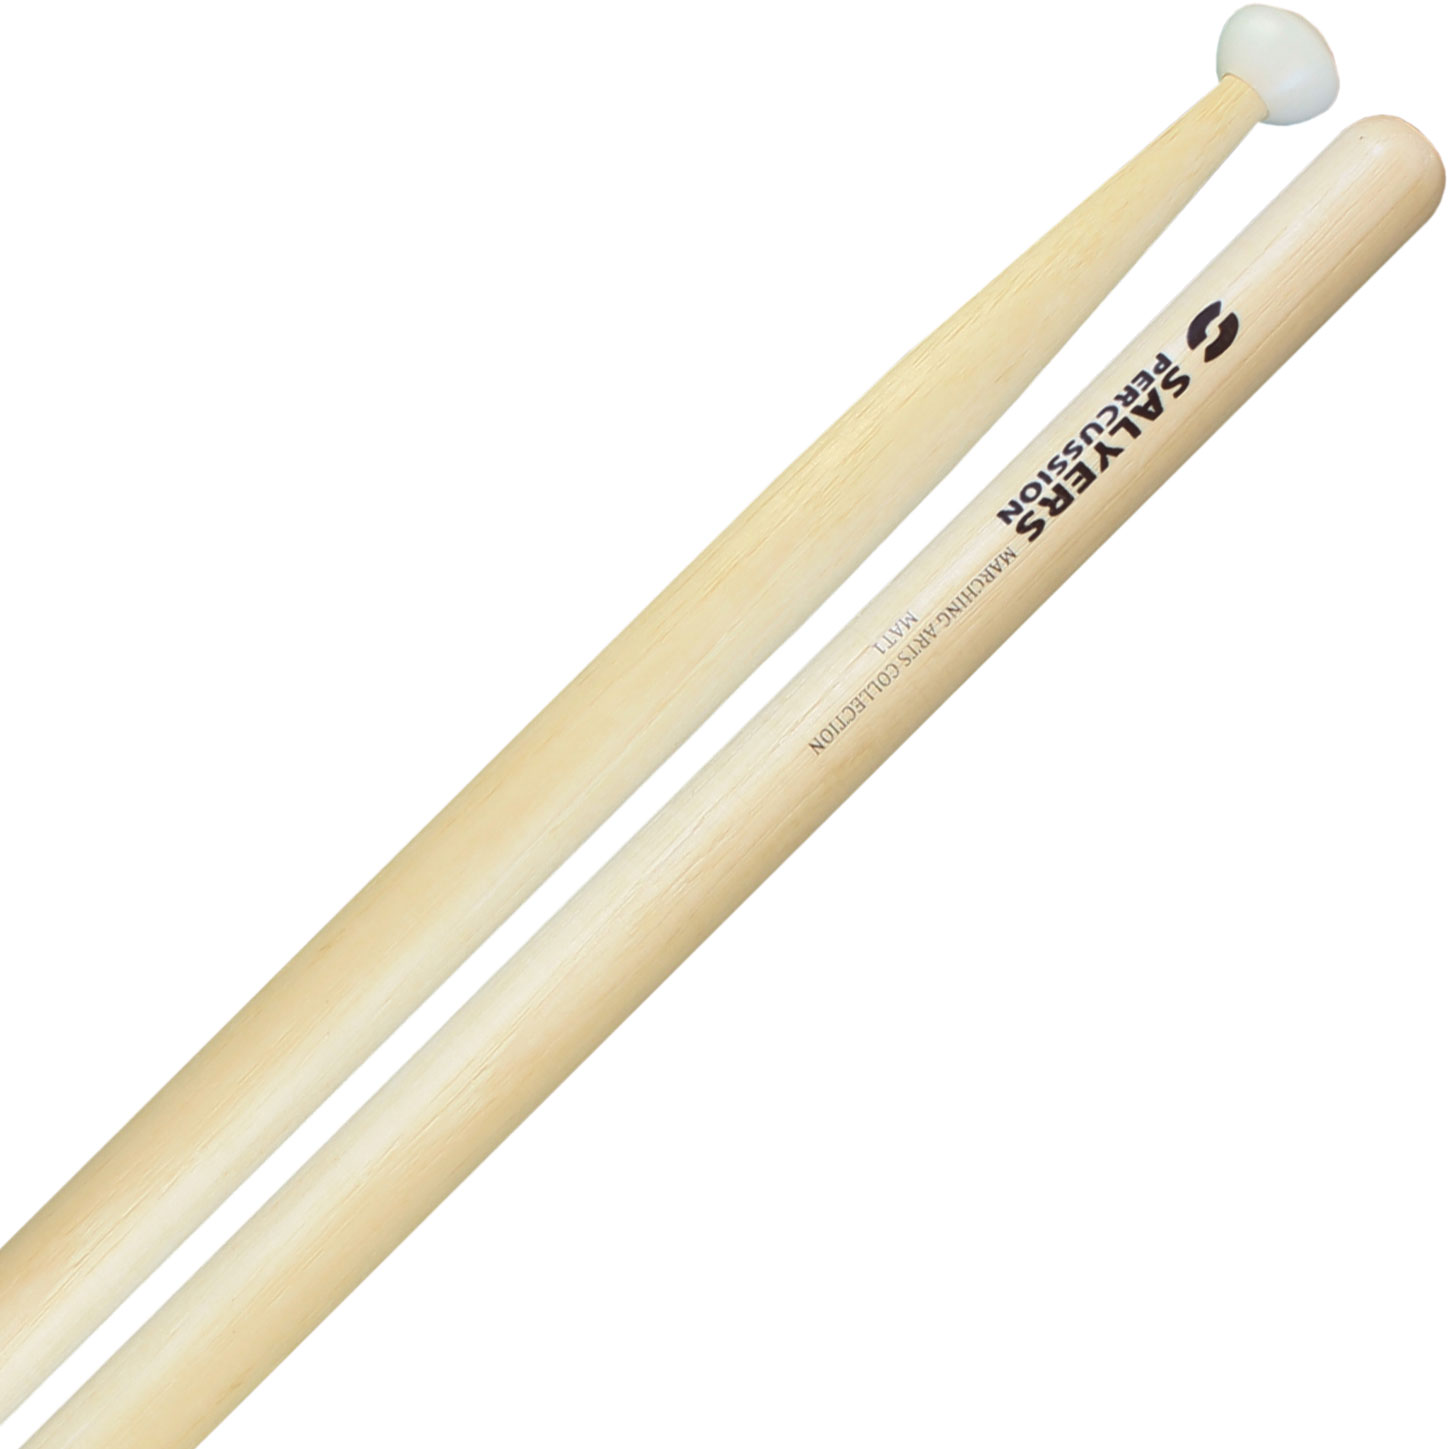 Salyers Percussion Marching Arts Collection Double Sided Marching Tenor Mallets